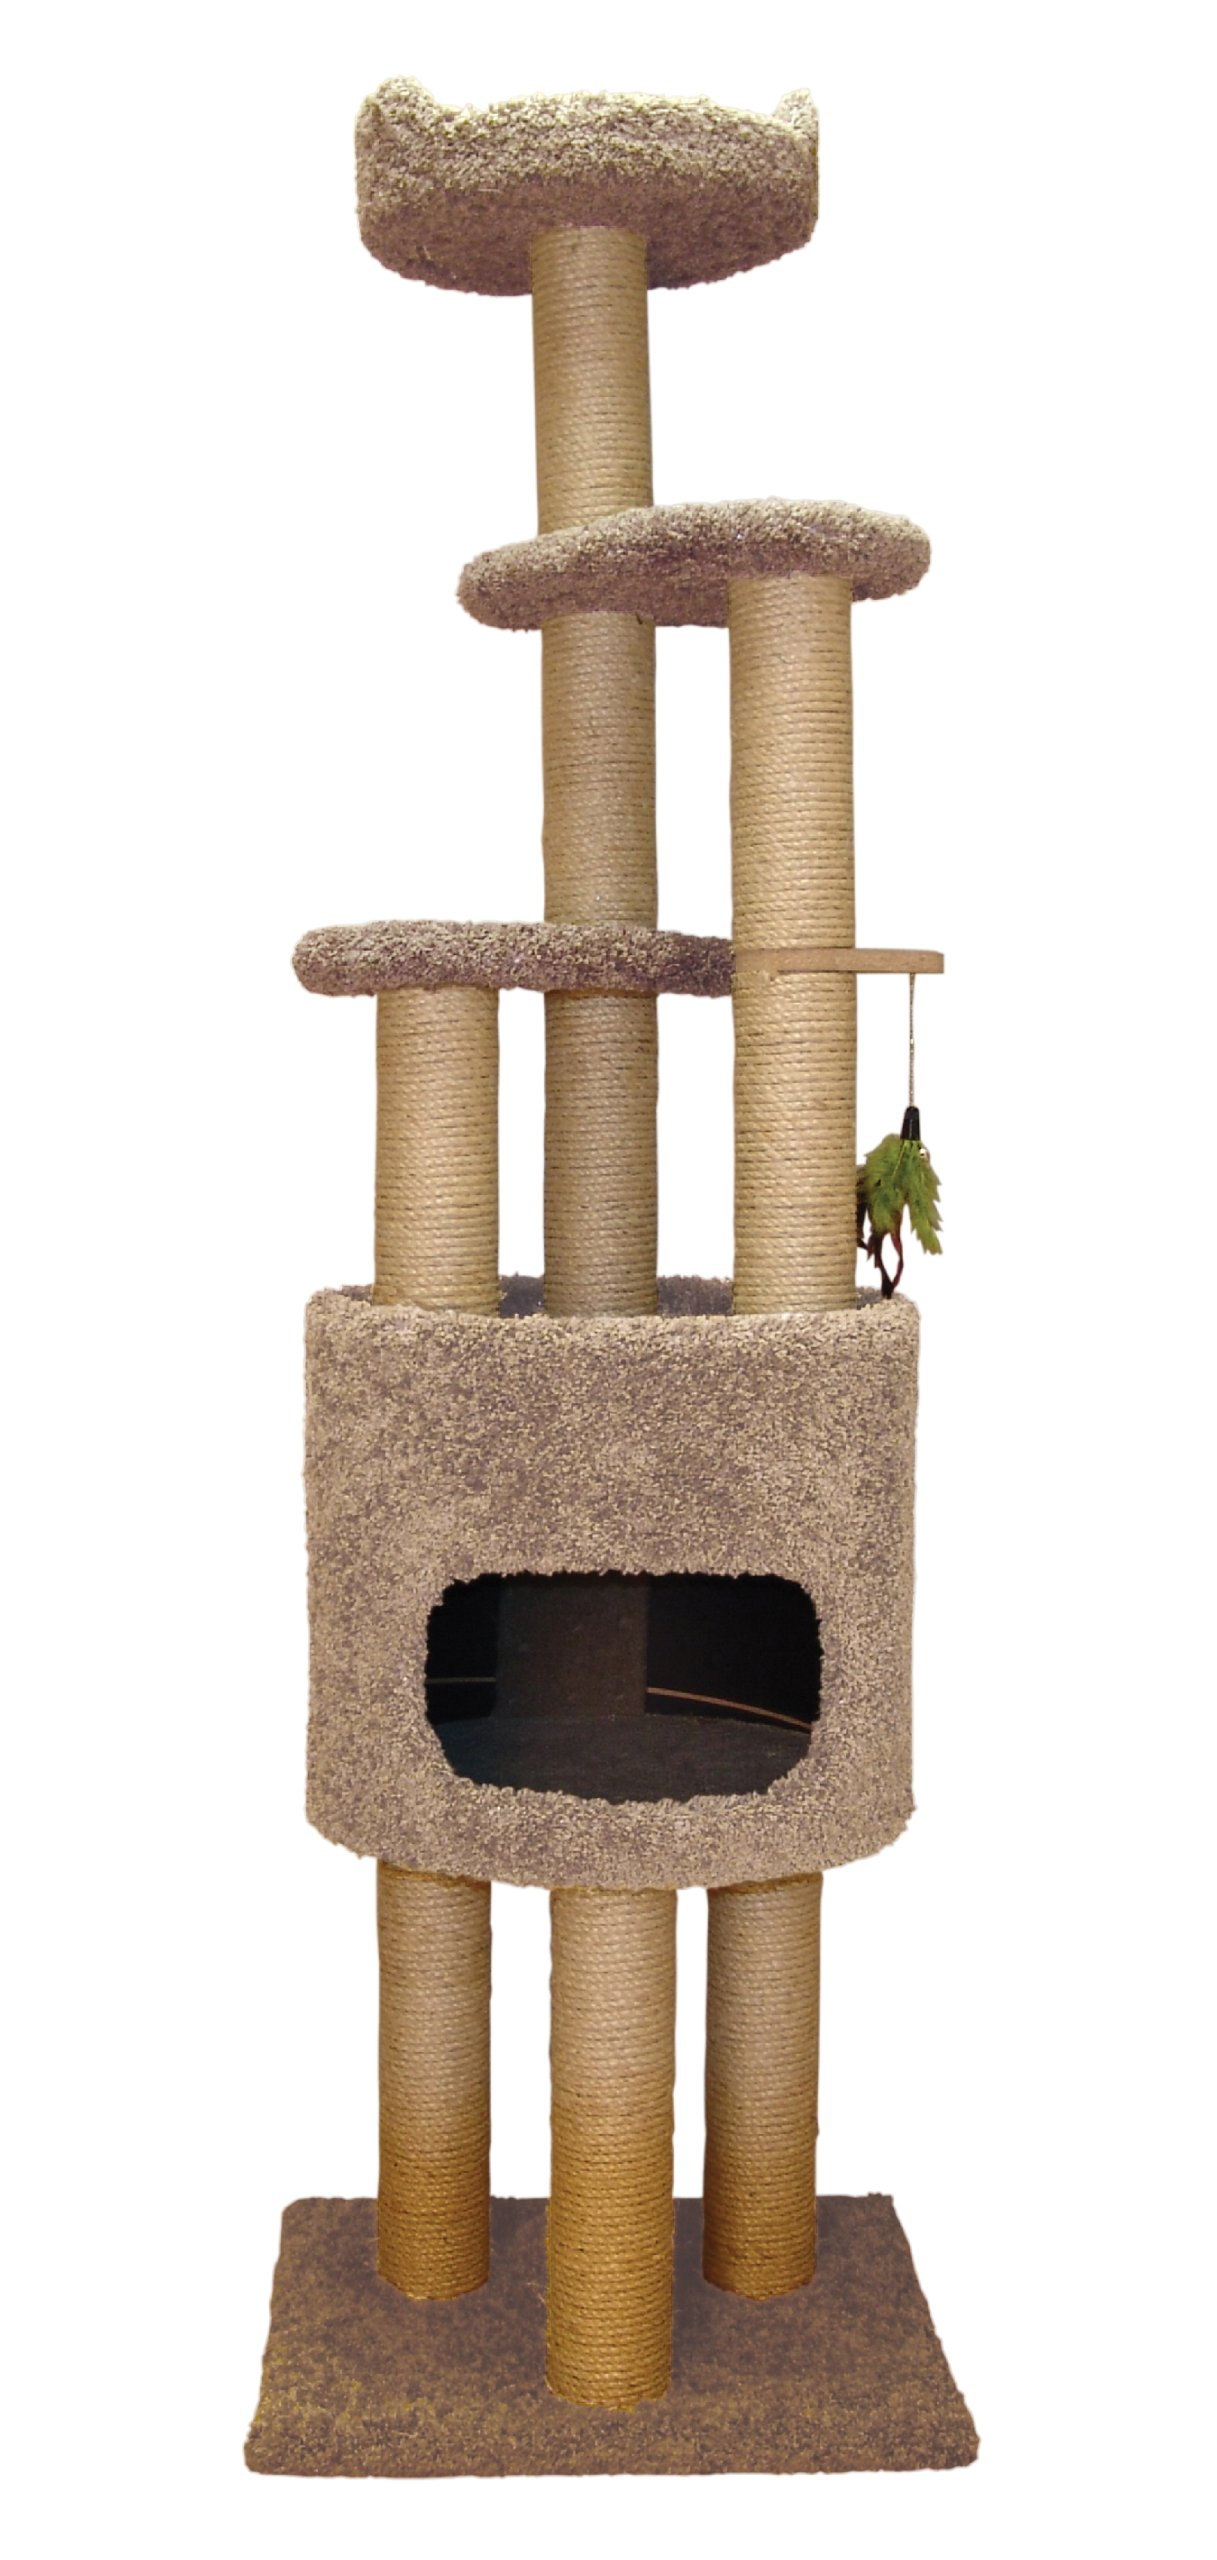 Classy Kitty 73'' 5 Story Cat Condo Cat Tree With Sky Lookout and Booster Base Natural beige 21x22x73